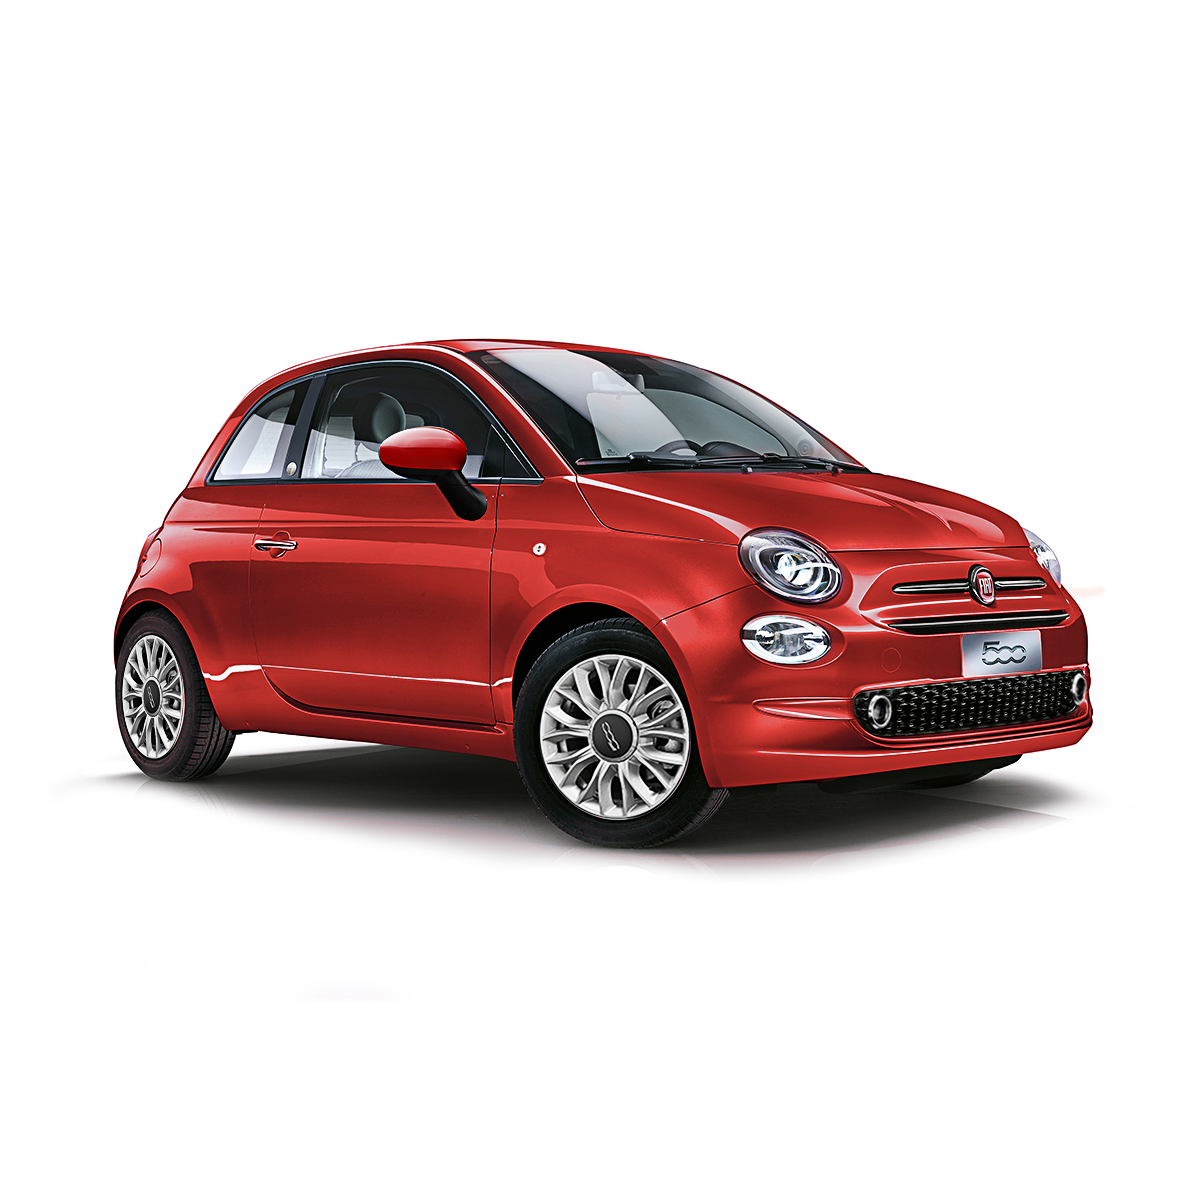 Fiat 500 POP 1.2 DUALOGIC